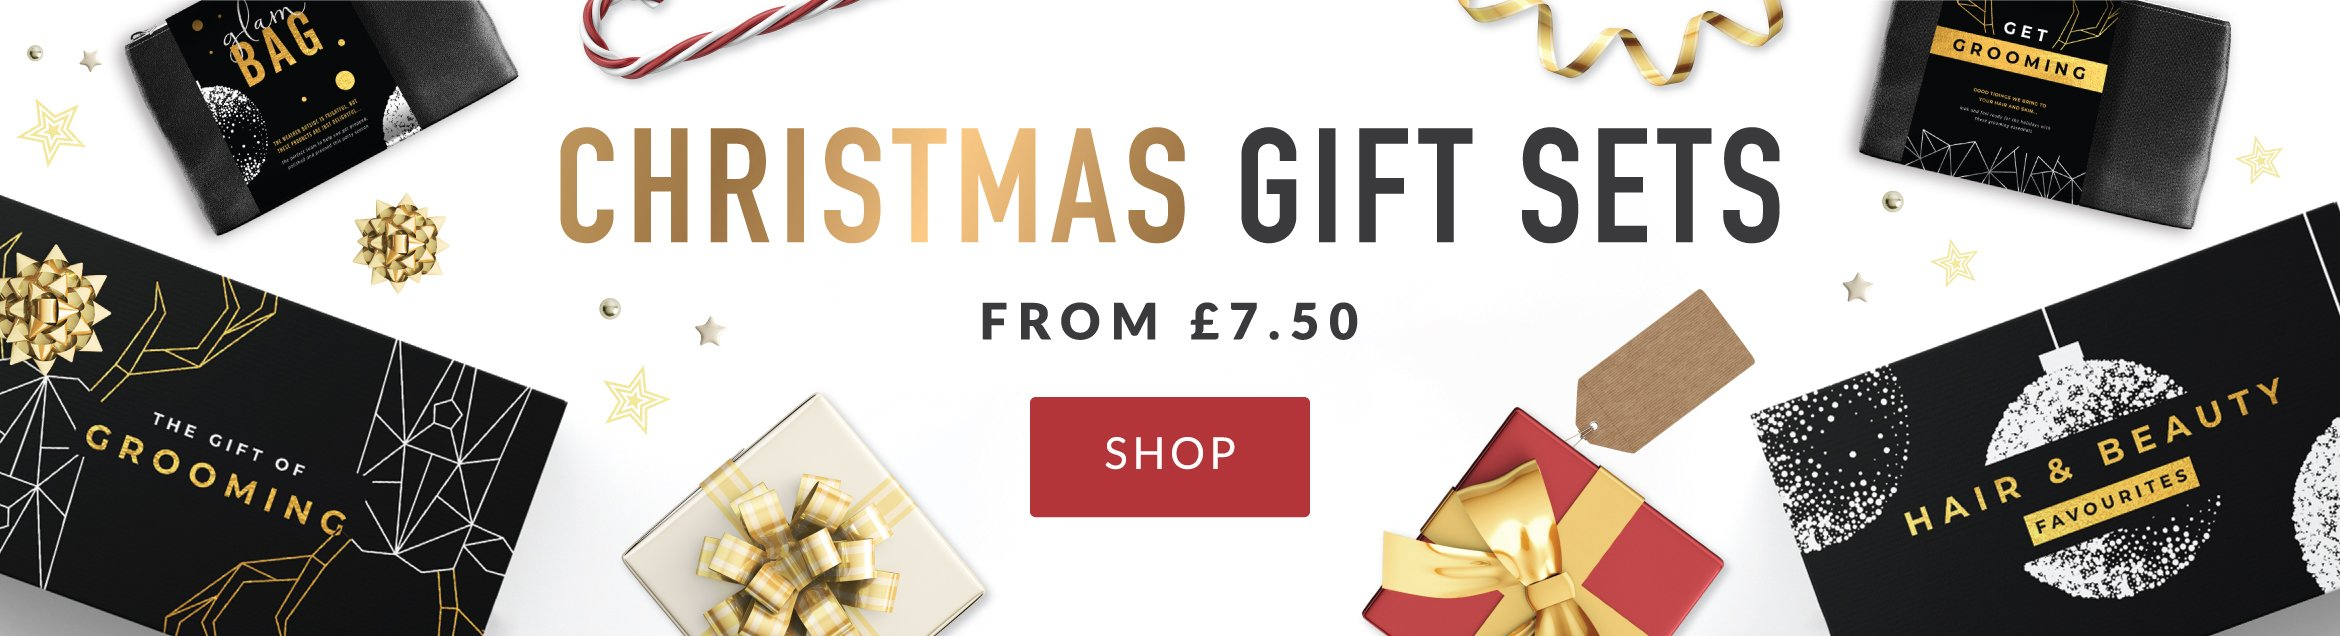 Capital Christmas Gift Sets 2019